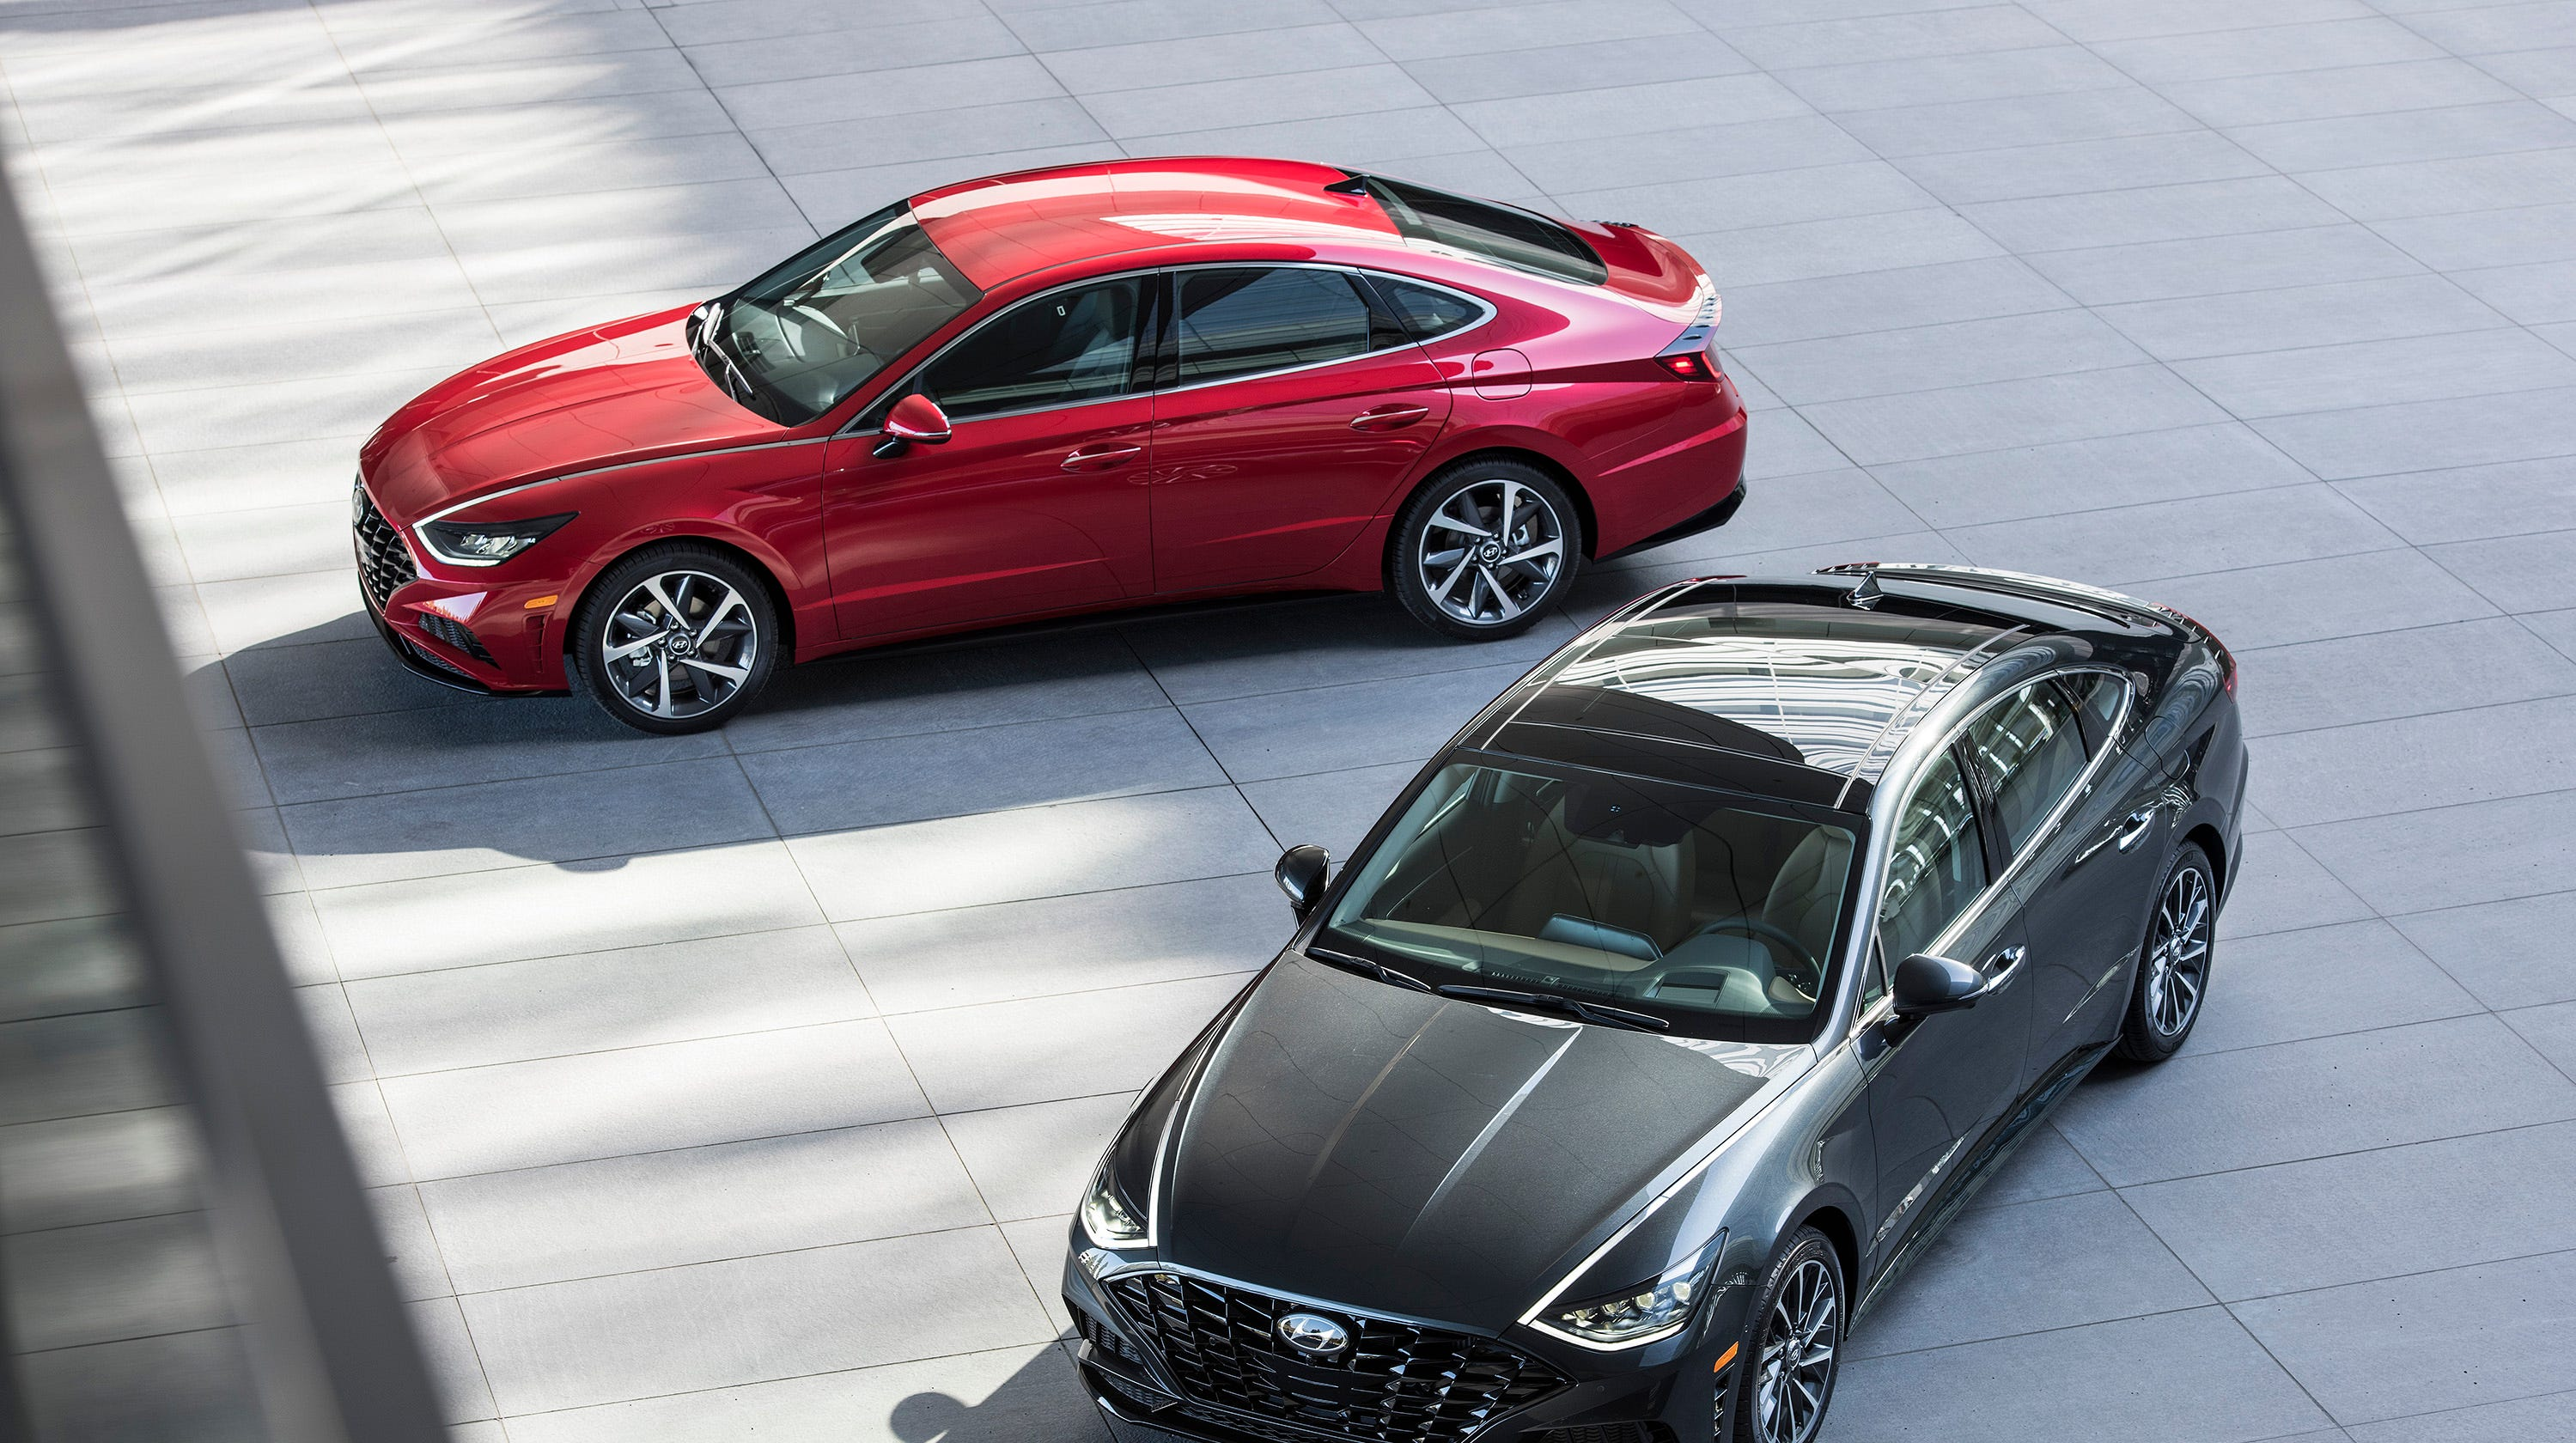 """The redesigned 2020 Hyundai Sonata feature a """"digital key,"""" a smartphone app, and smart tech that emphasizes convenience."""